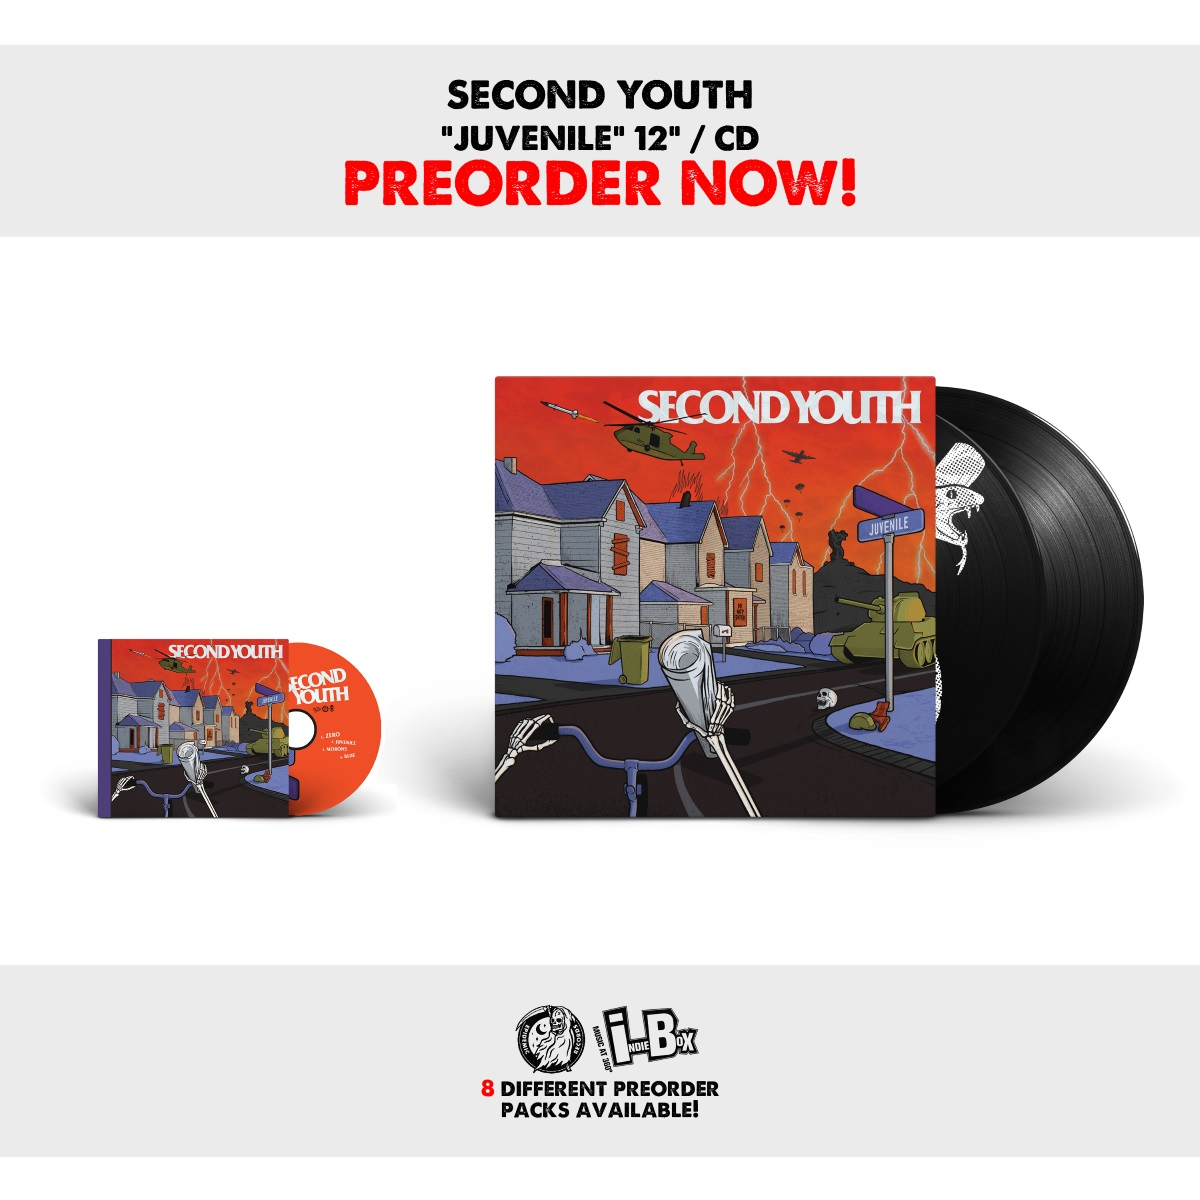 SECOND YOUTH promo